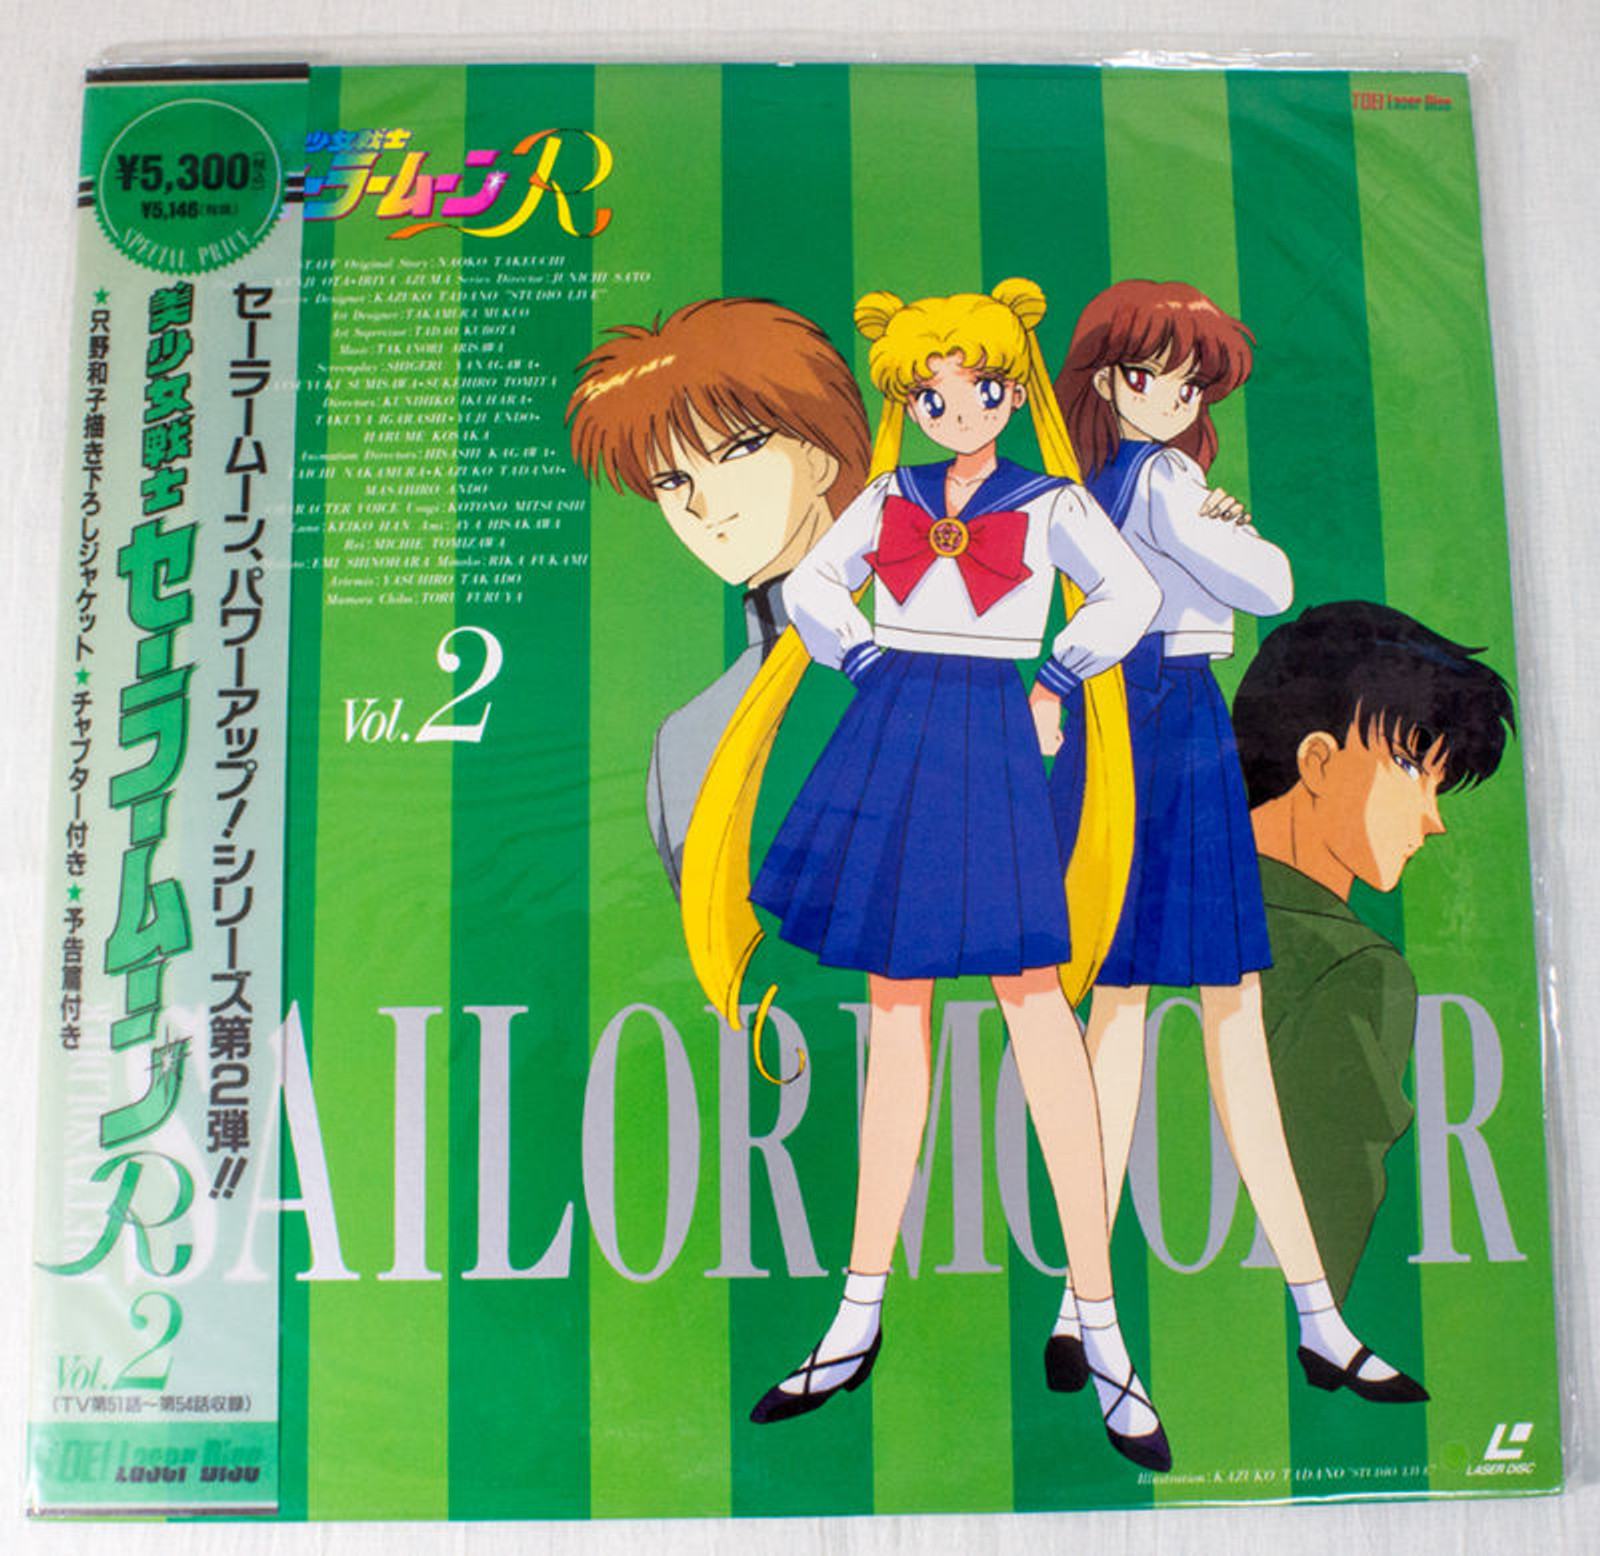 Sailor Moon R Vol.2 Laser Disc LD JAPAN ANIME MANGA